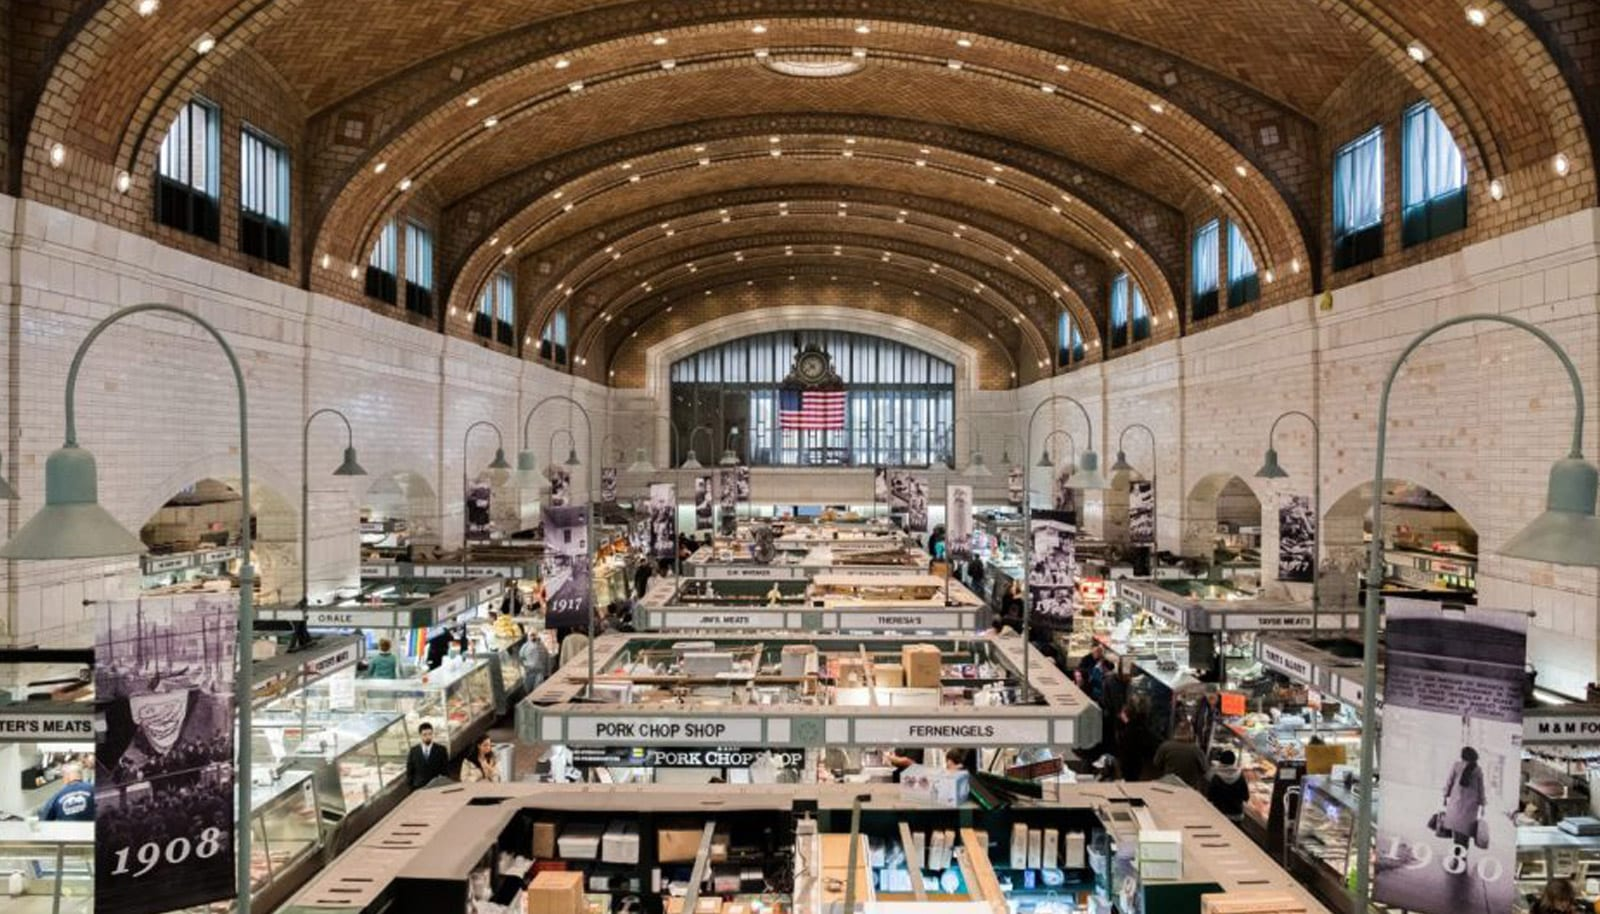 large indoor marketplace with historic architectural structures